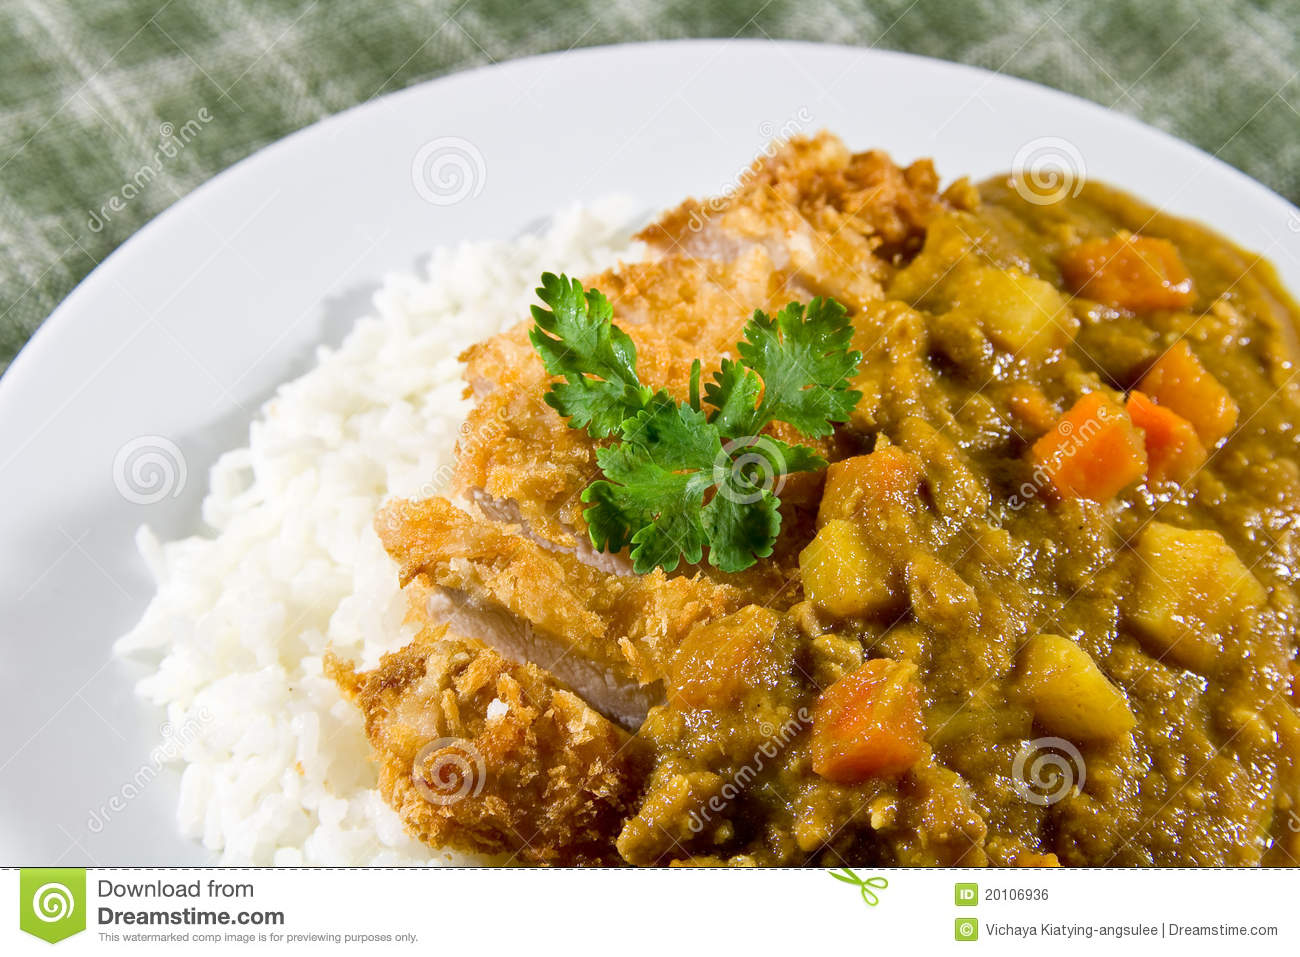 Japanese Curry Rice Royalty Free Stock Image - Image: 20106936